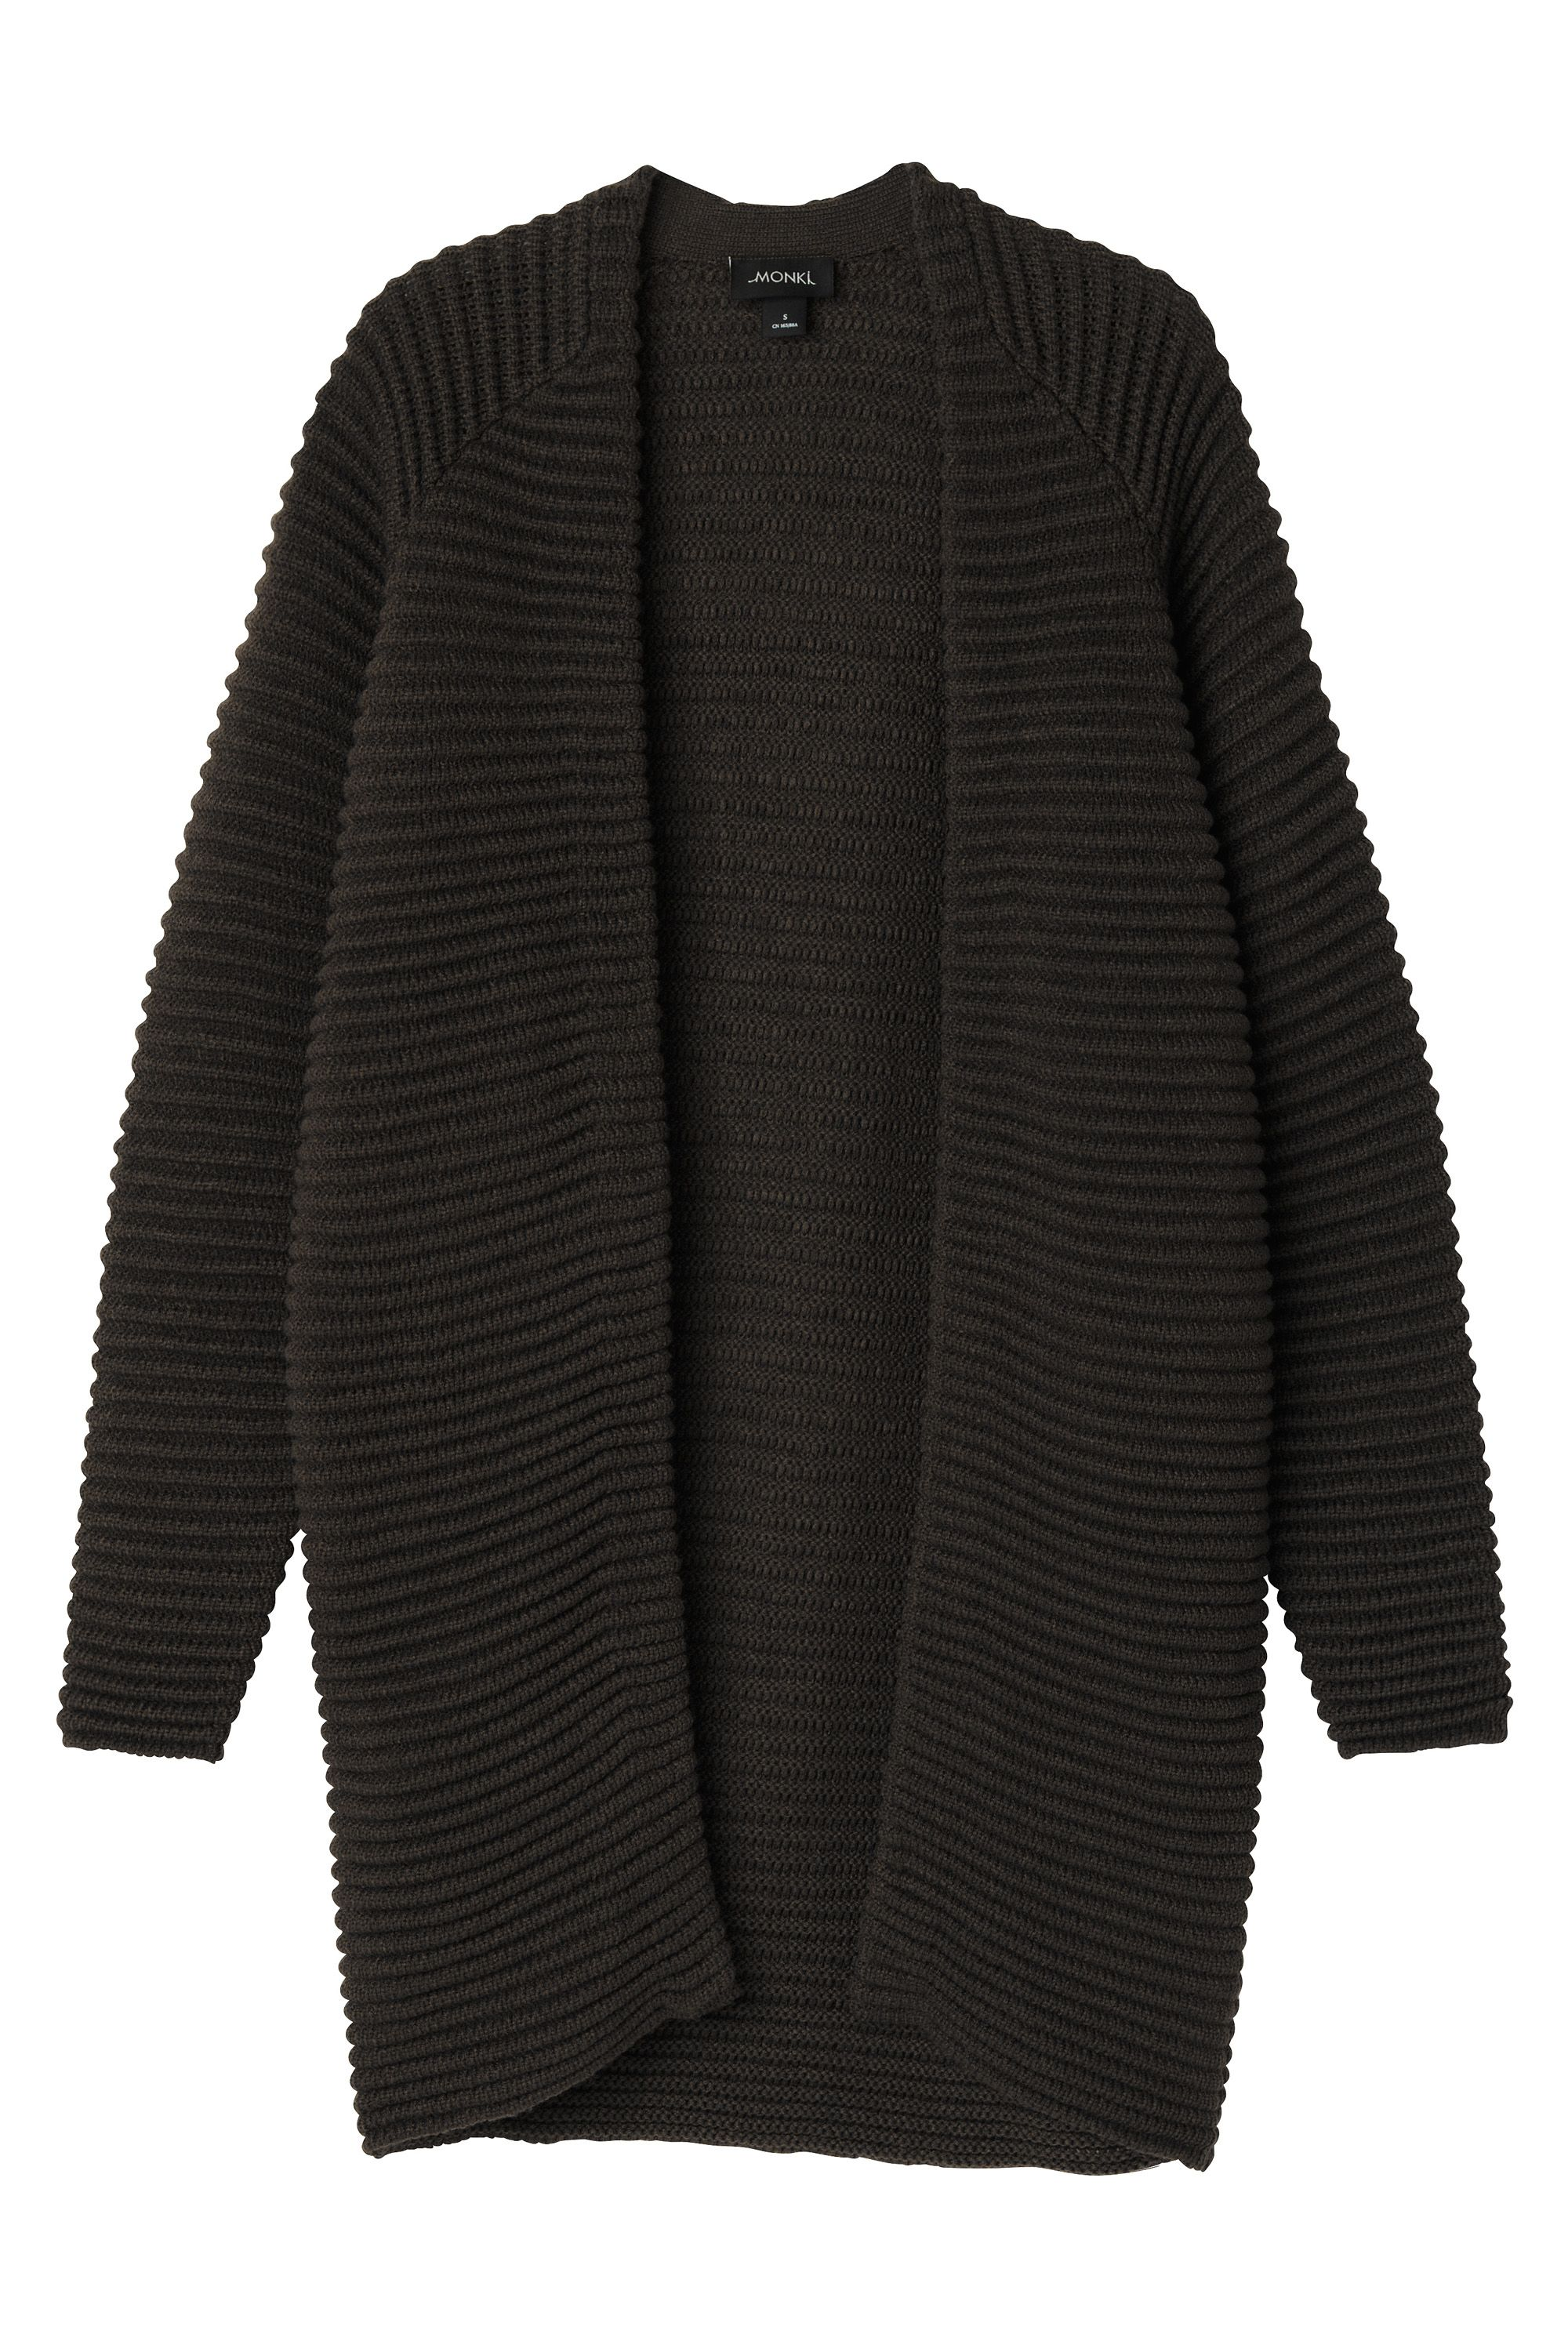 Monki | View all new | Dyvike knitted cardigan | Clothes ...